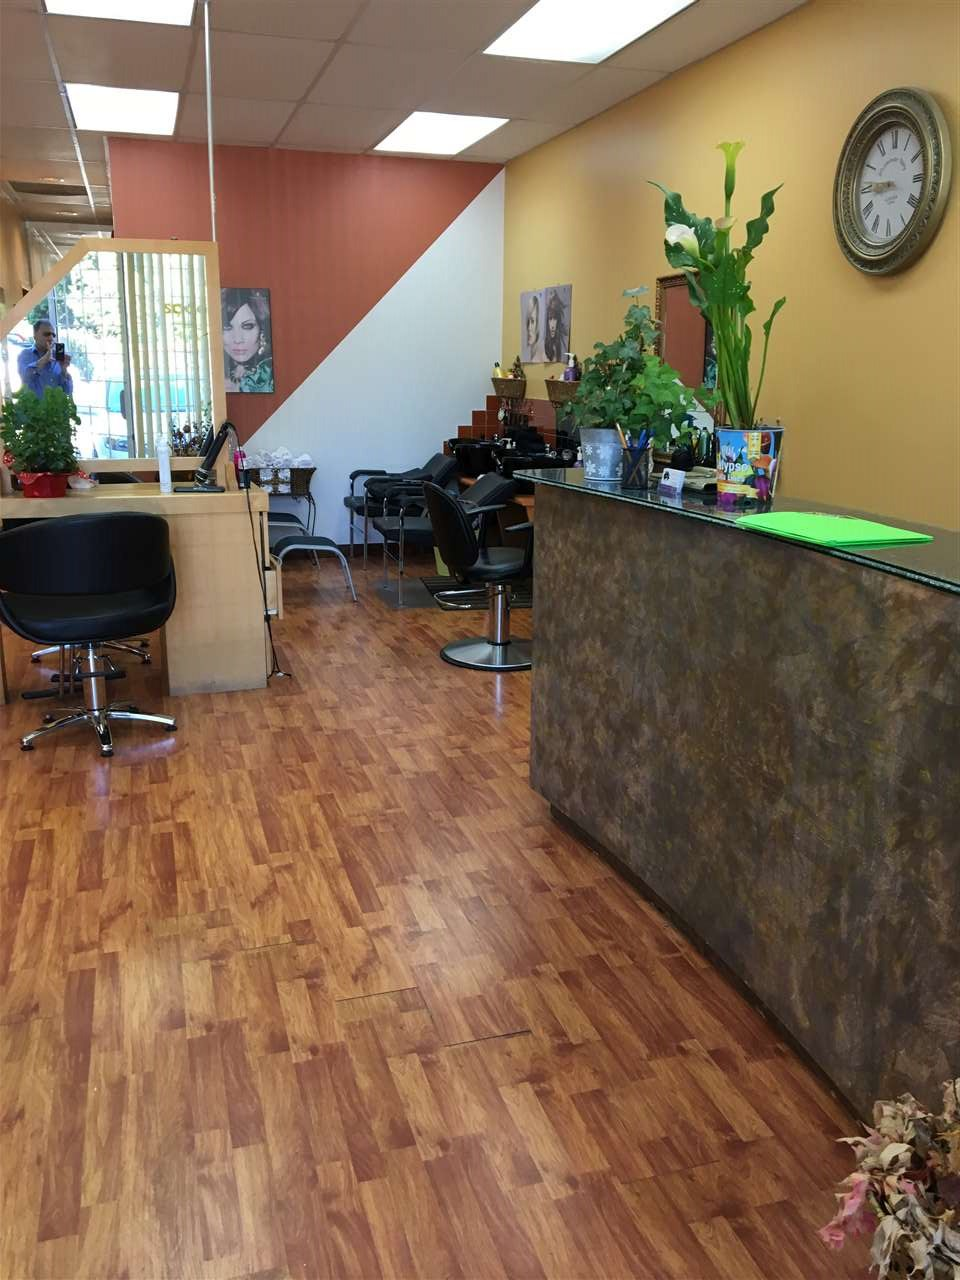 Excellent Location, Image plaza. Well established beauty and Hair Salon and spa. Great income and low rent. 5 chair, could be 8-(6 sink, shampoo) , potential income by hair product.